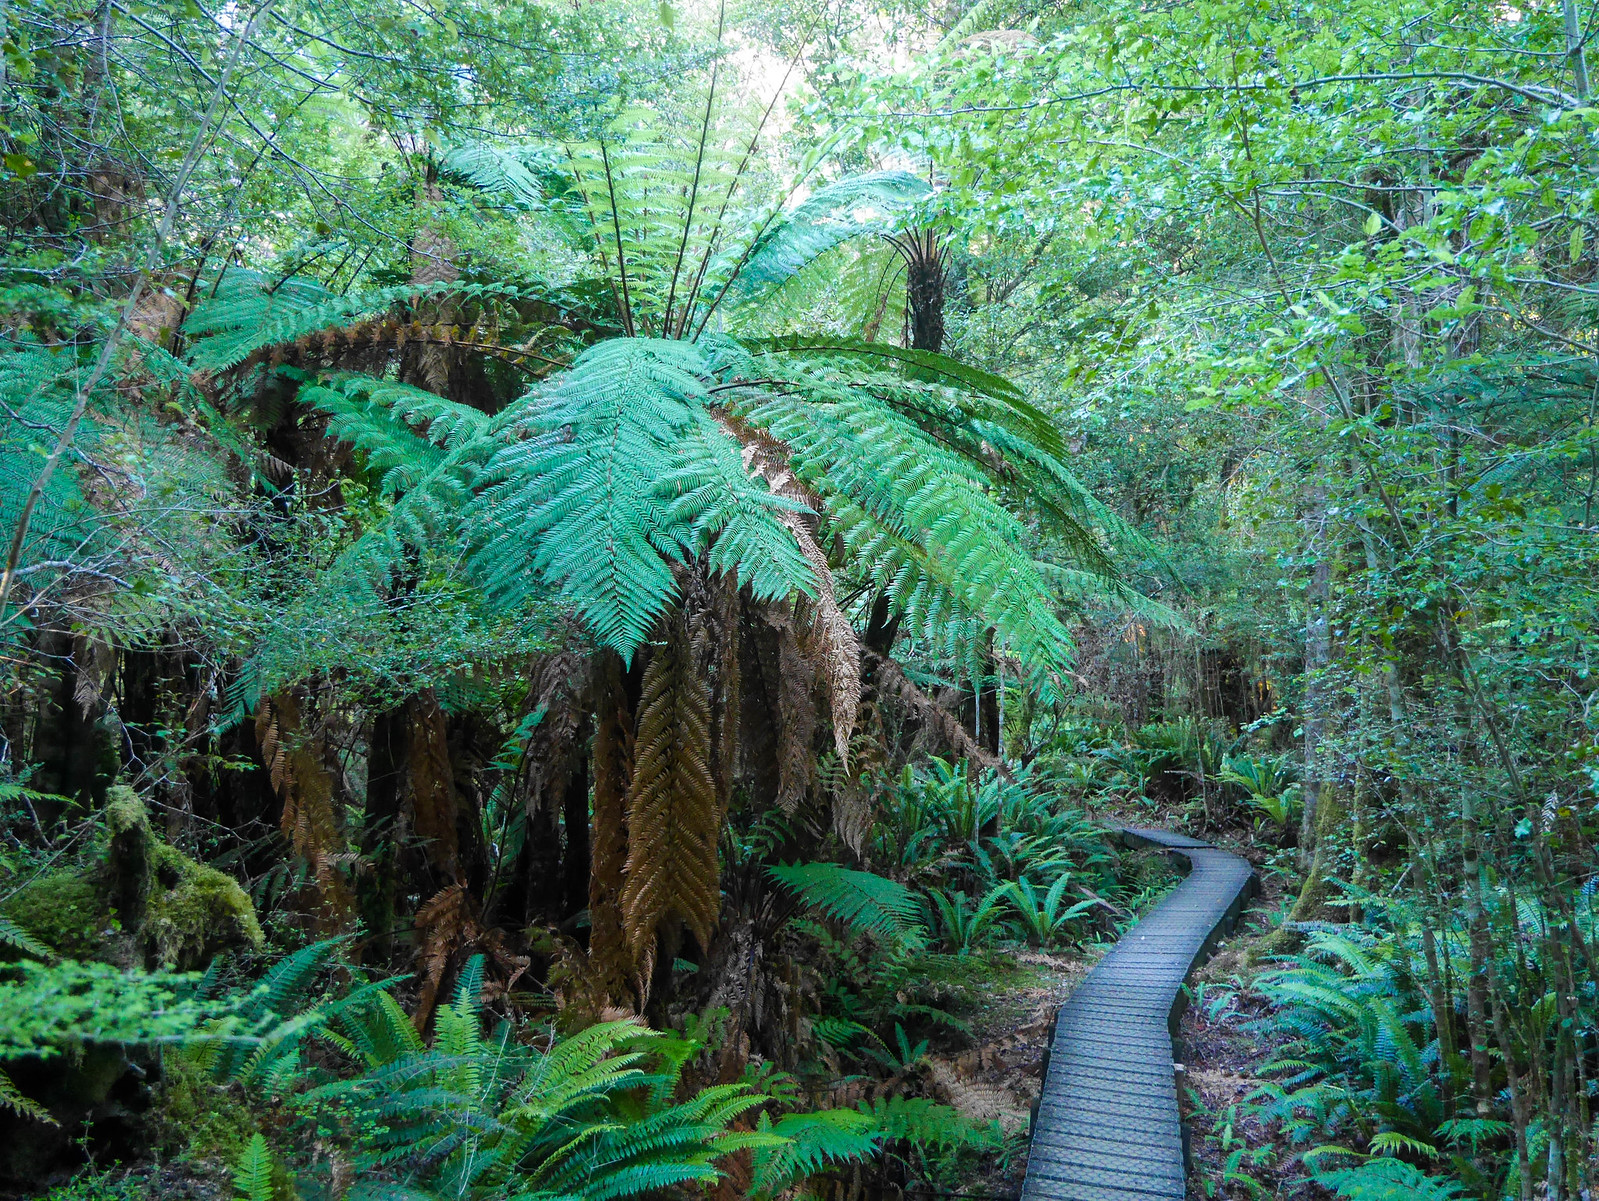 Tree ferns and boardwalks